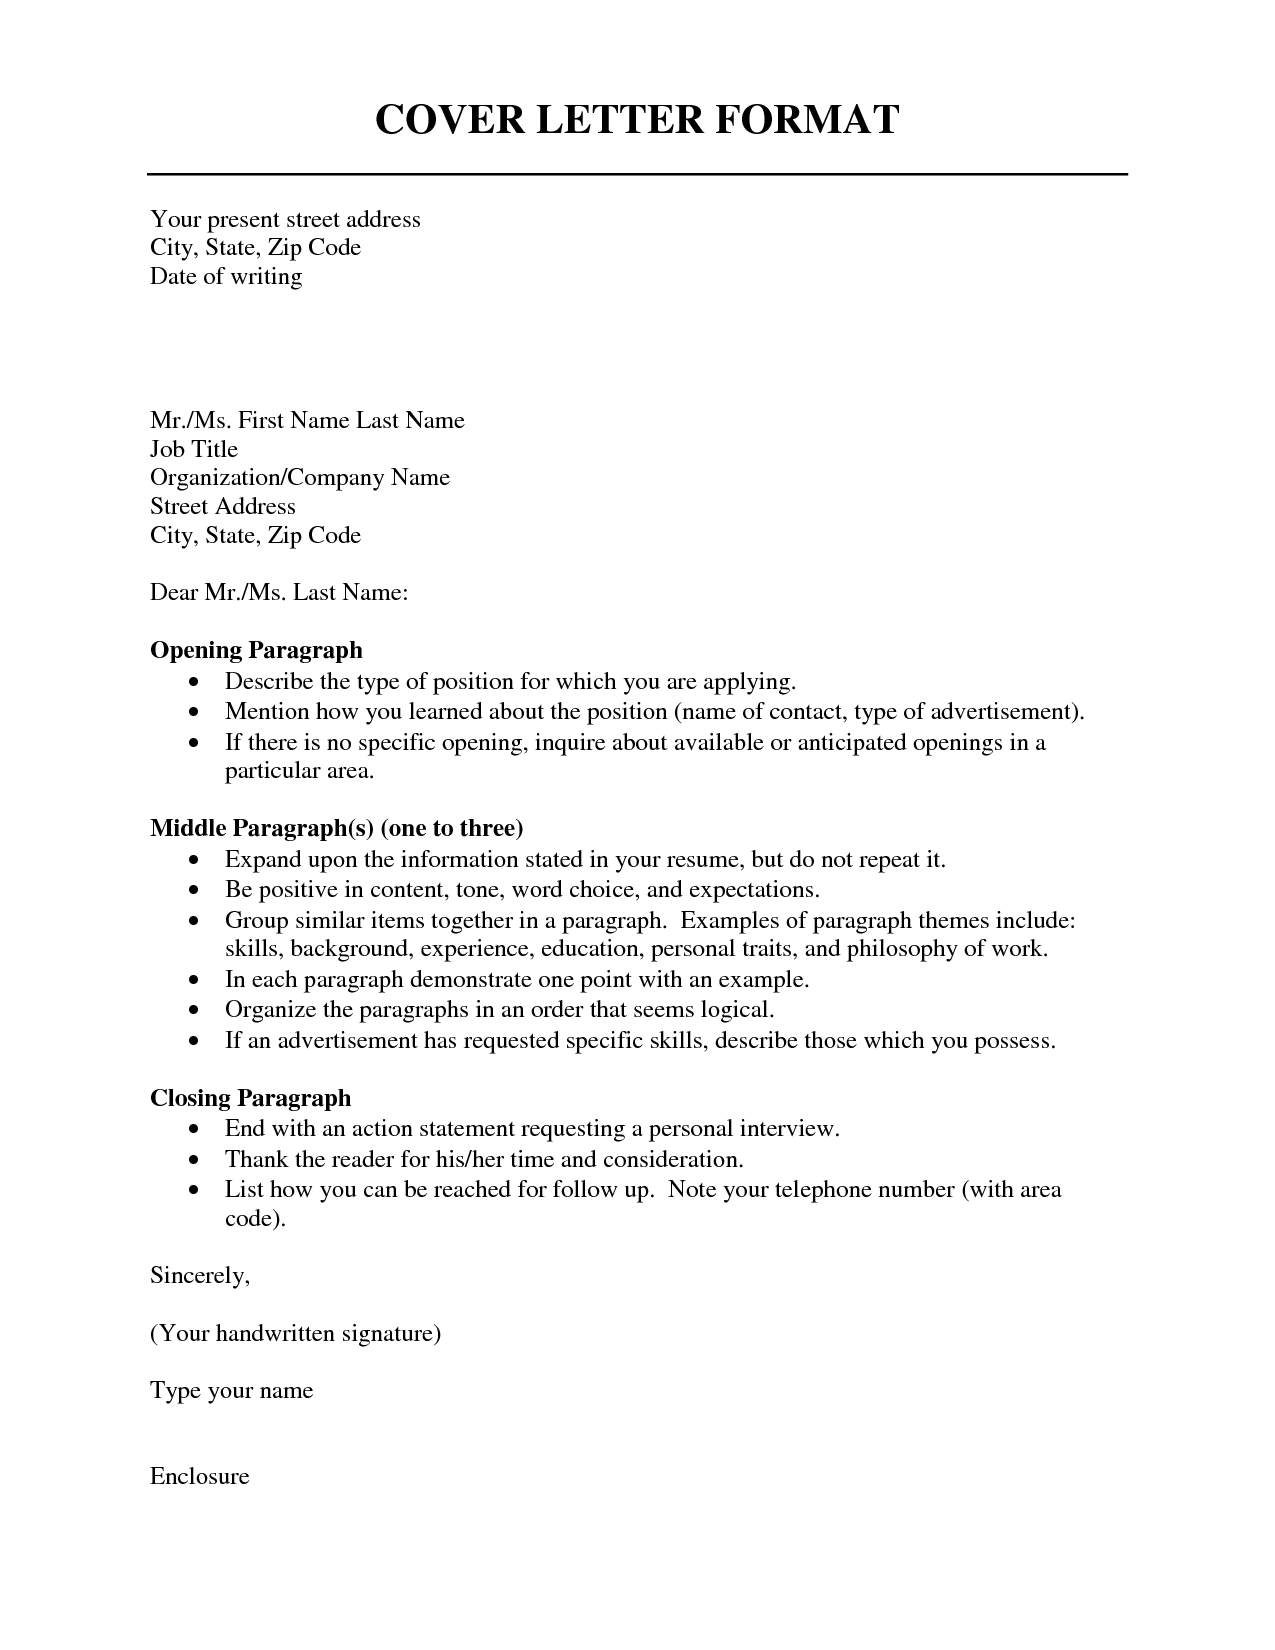 Perfect Proper Format Of A Cover Letter